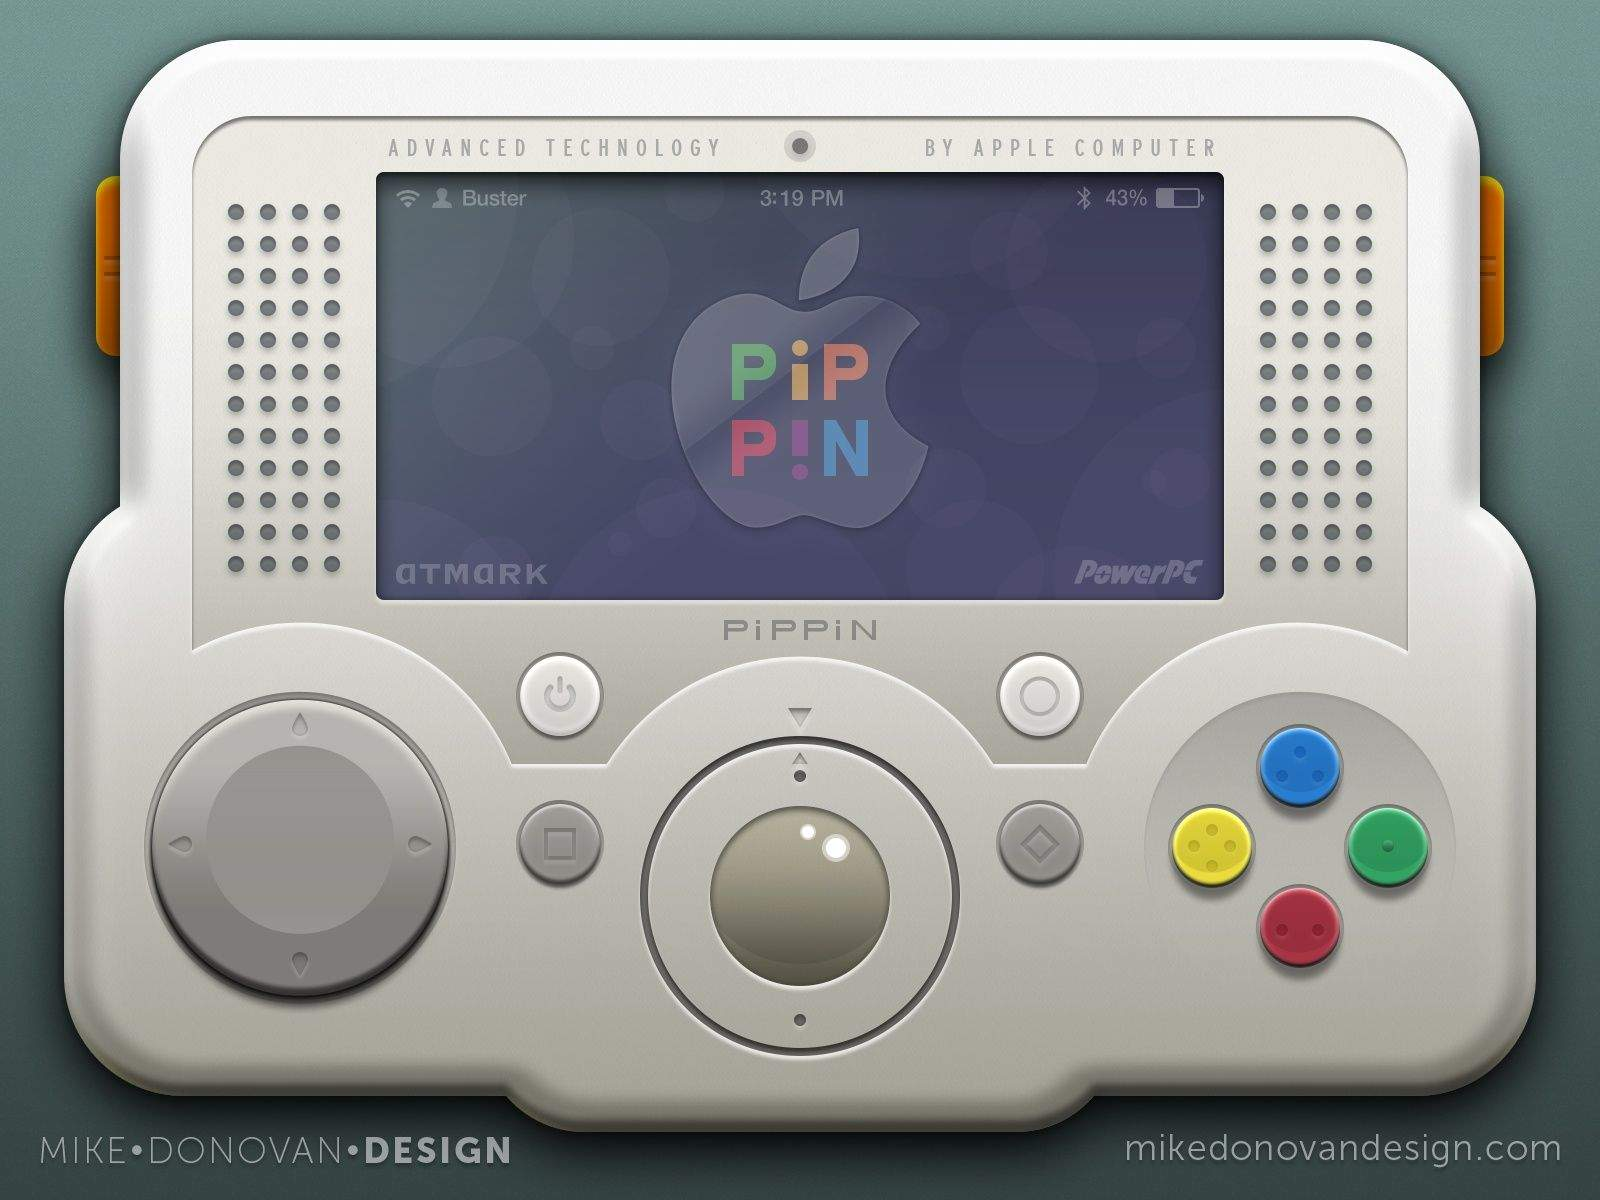 This portable Pippin design is just one of the faux Apple products in Mike Donovan's portfolio of vintage reveries. Images: Mike Donovan